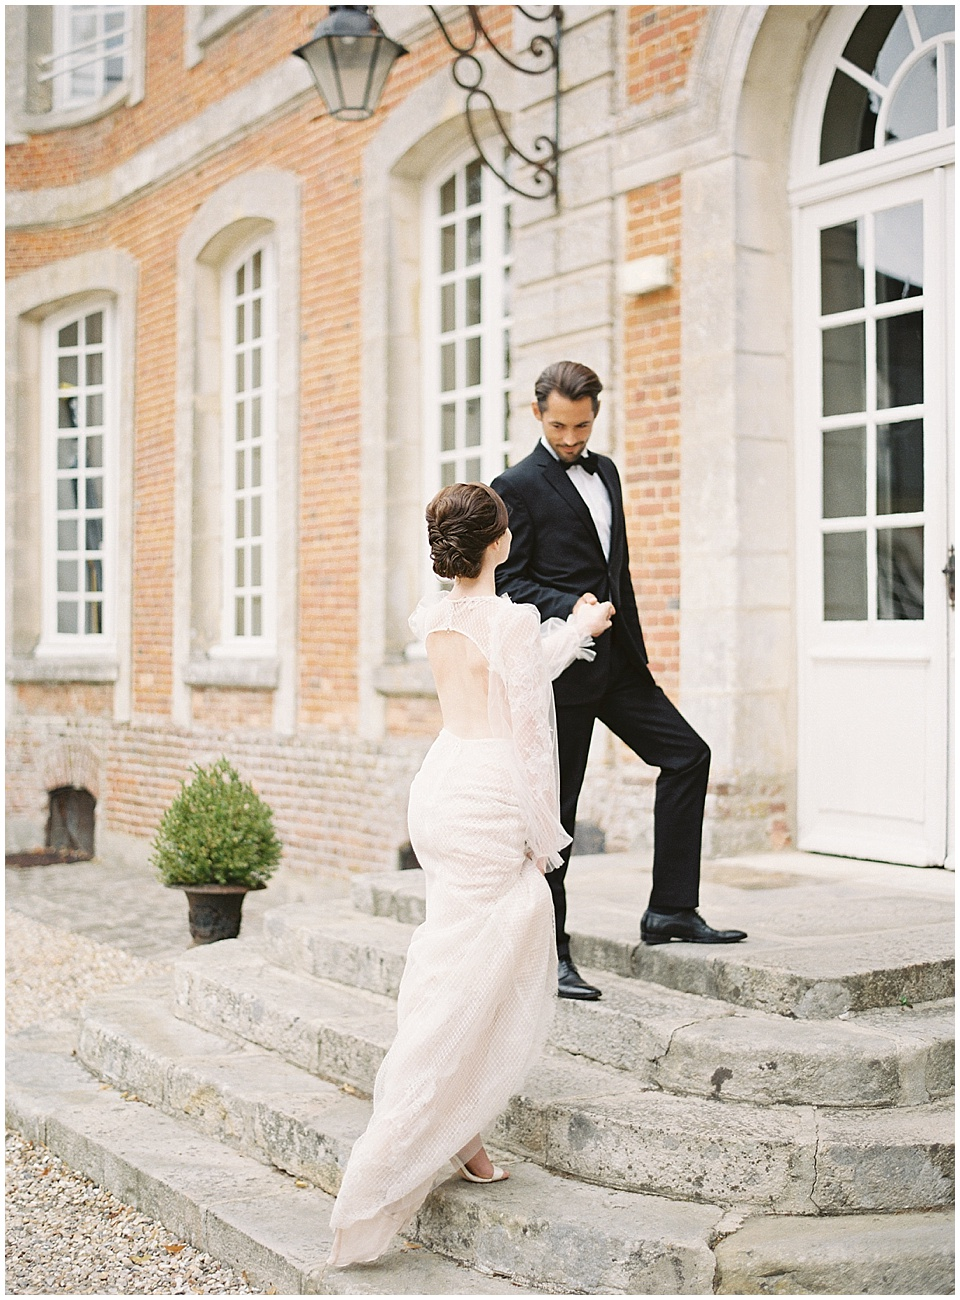 French chateau | Bride and groom portraits | Joy Proctor Design | French Wedding Inspiration | France Wedding | Destination Film Photographer | Paris Wedding | Fine Art Film Photographer |  Chateau De Carsix | Whiskers and Willow Photography